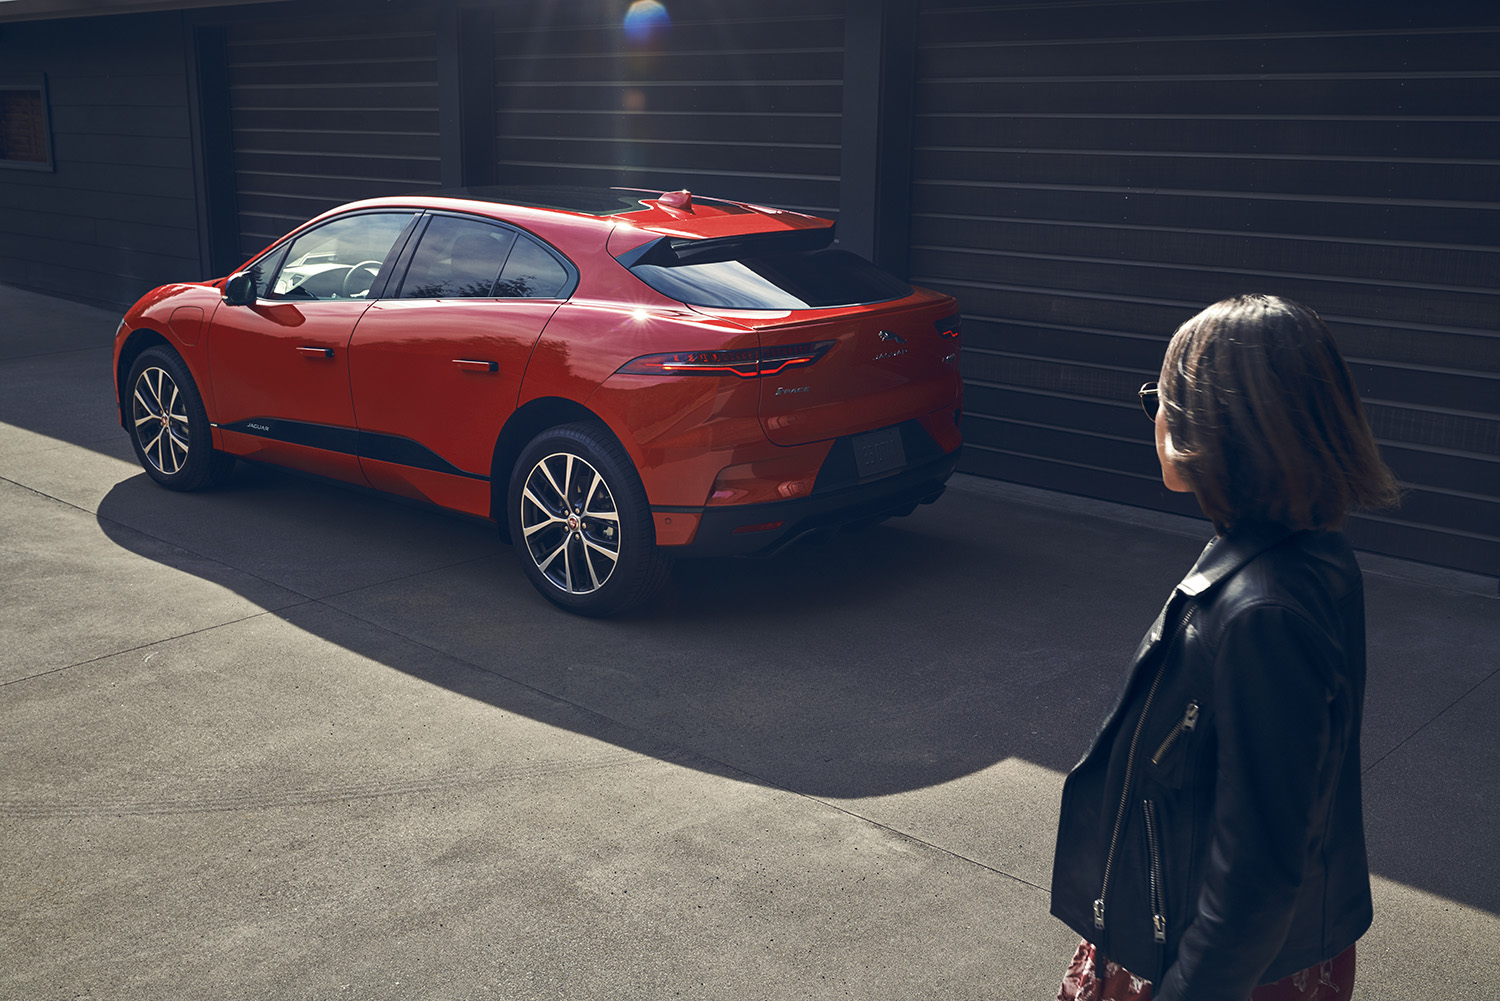 19-045_JLR_iPace_spring_SHOT_02_COMP04_FED